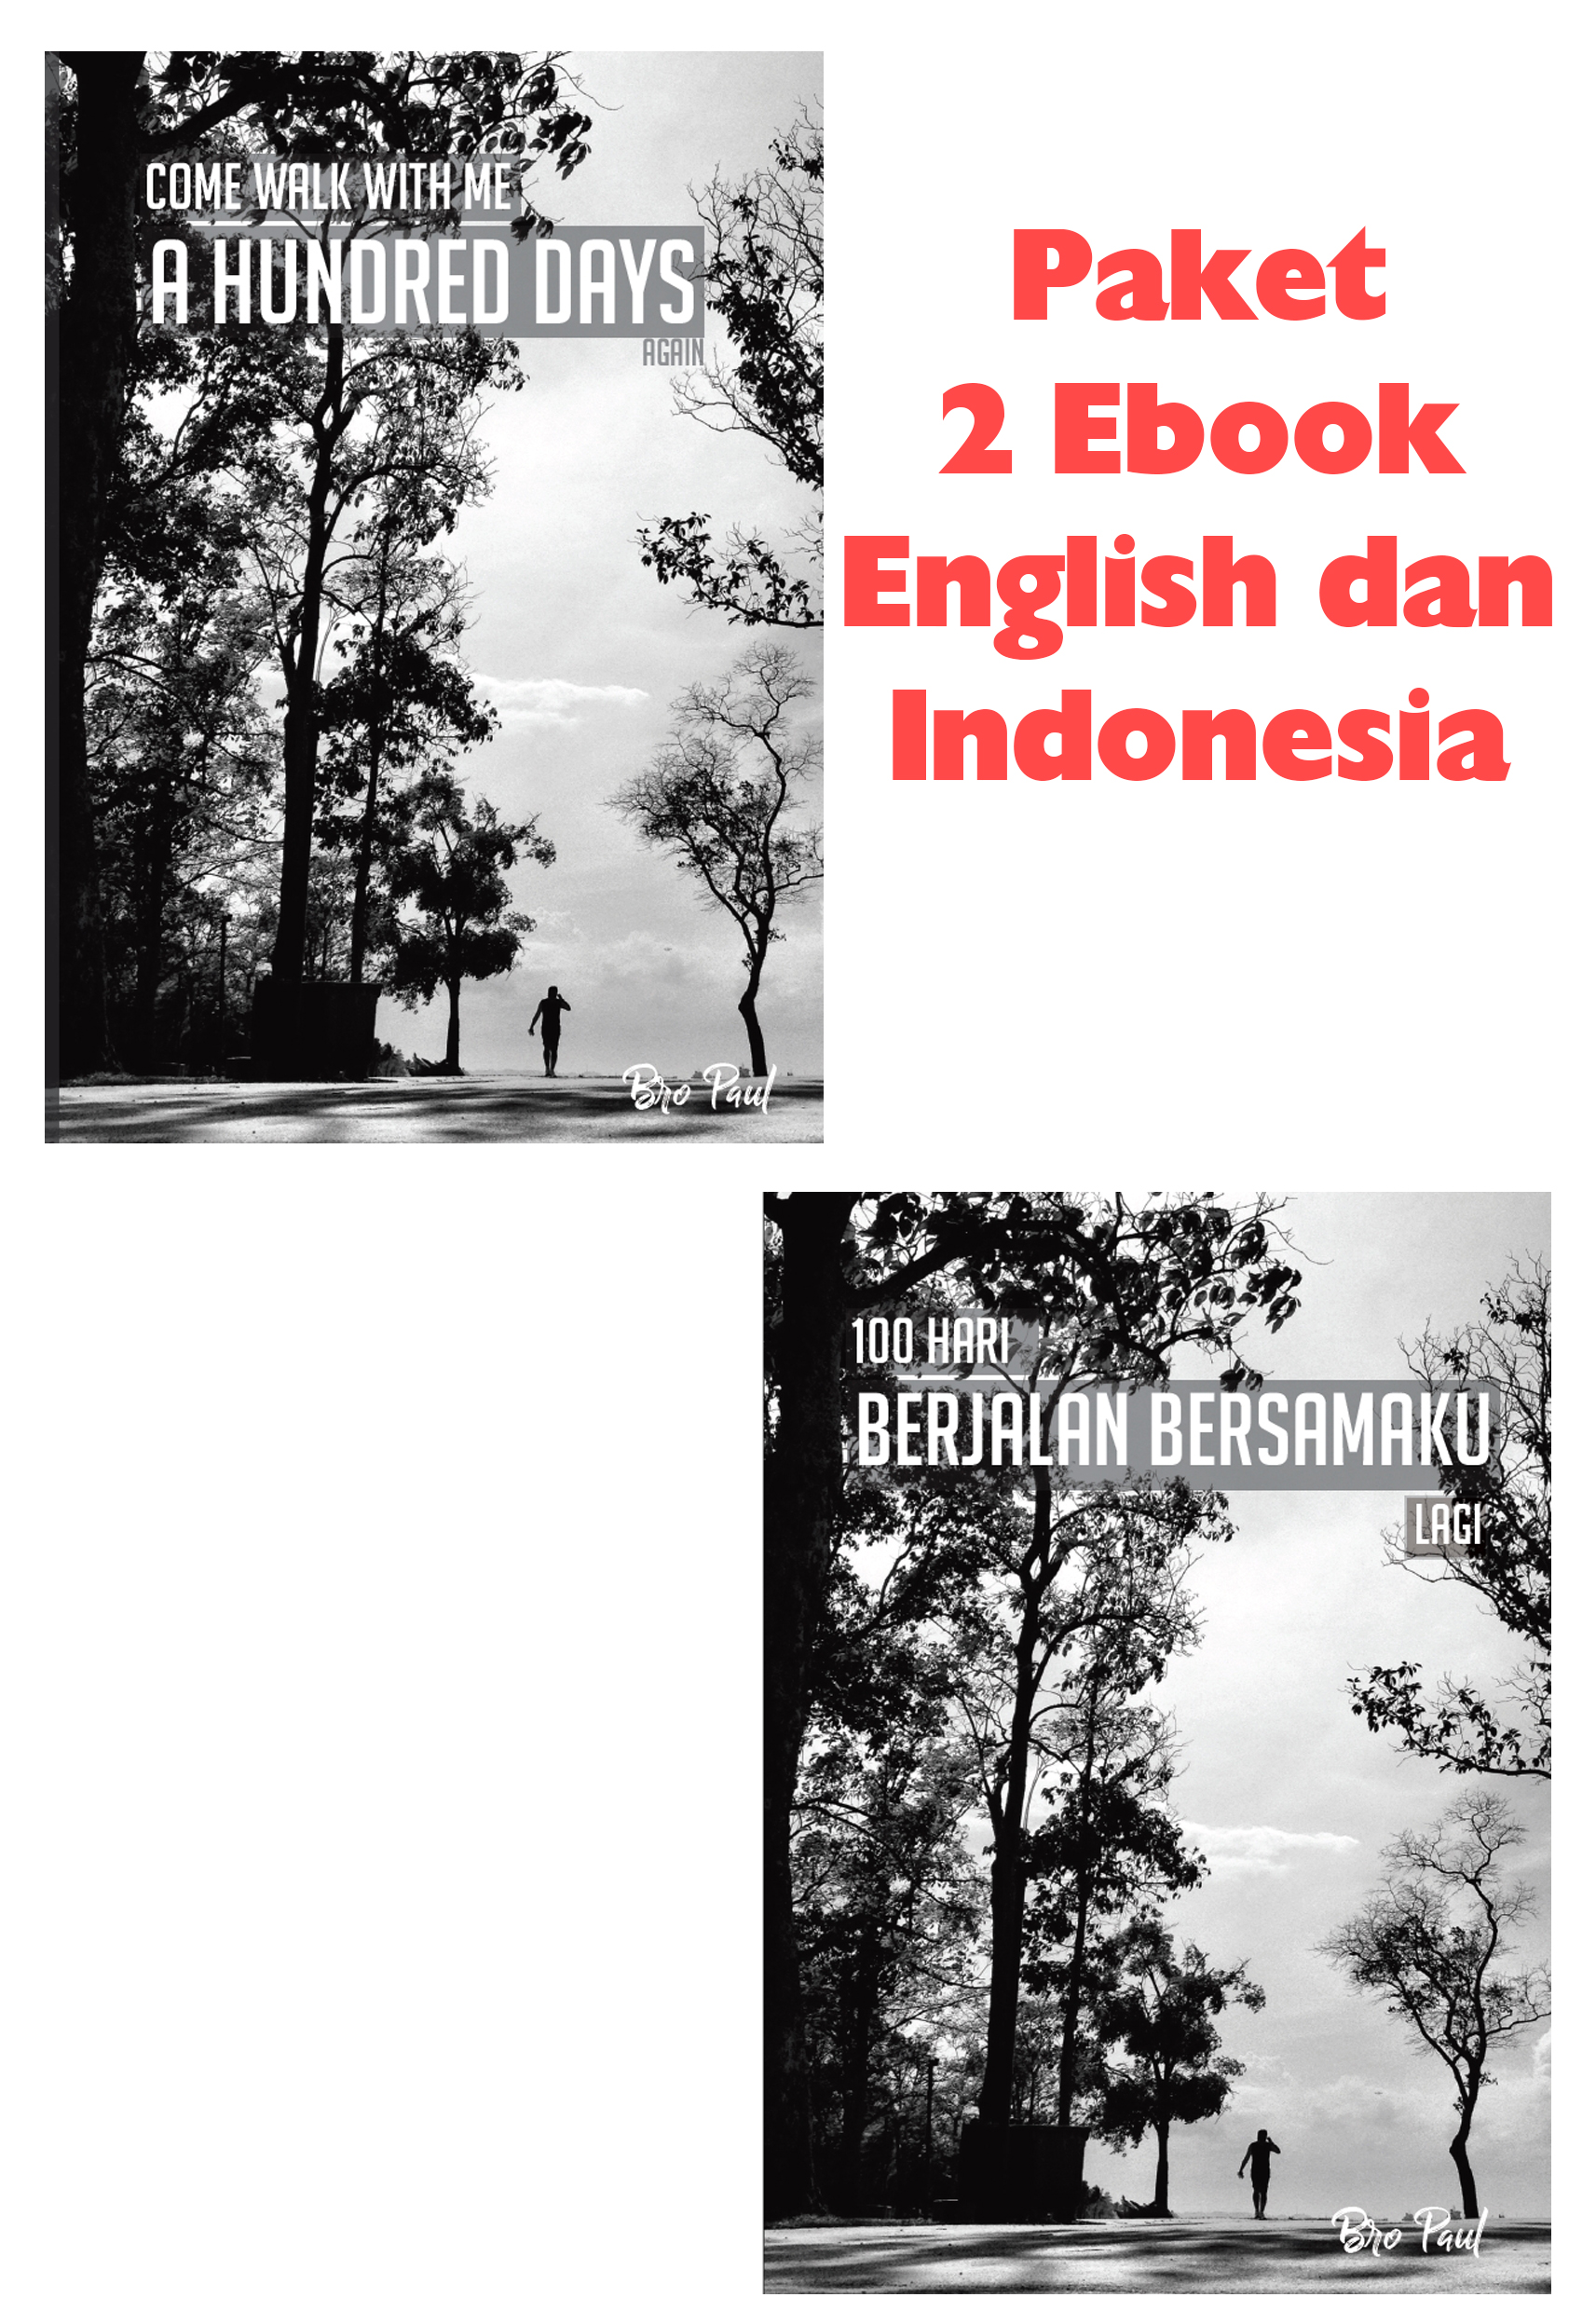 Paket 2 Ebook Paul Loh English dan Indonesia